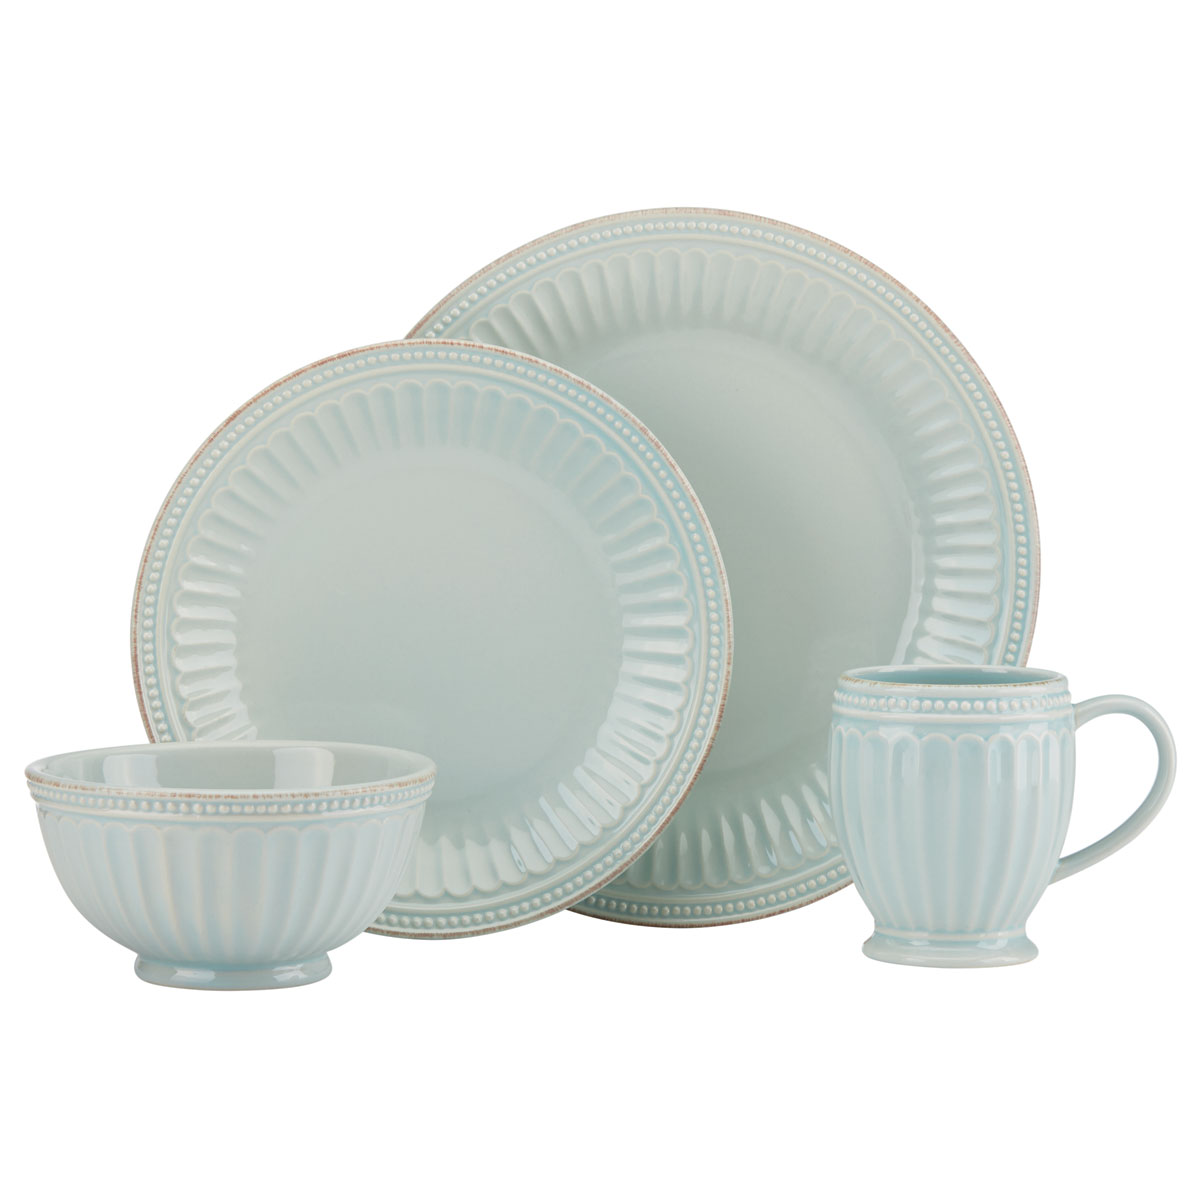 Lenox French Perle Groove Ice Blue Dinnerware 4 Piece Place Setting